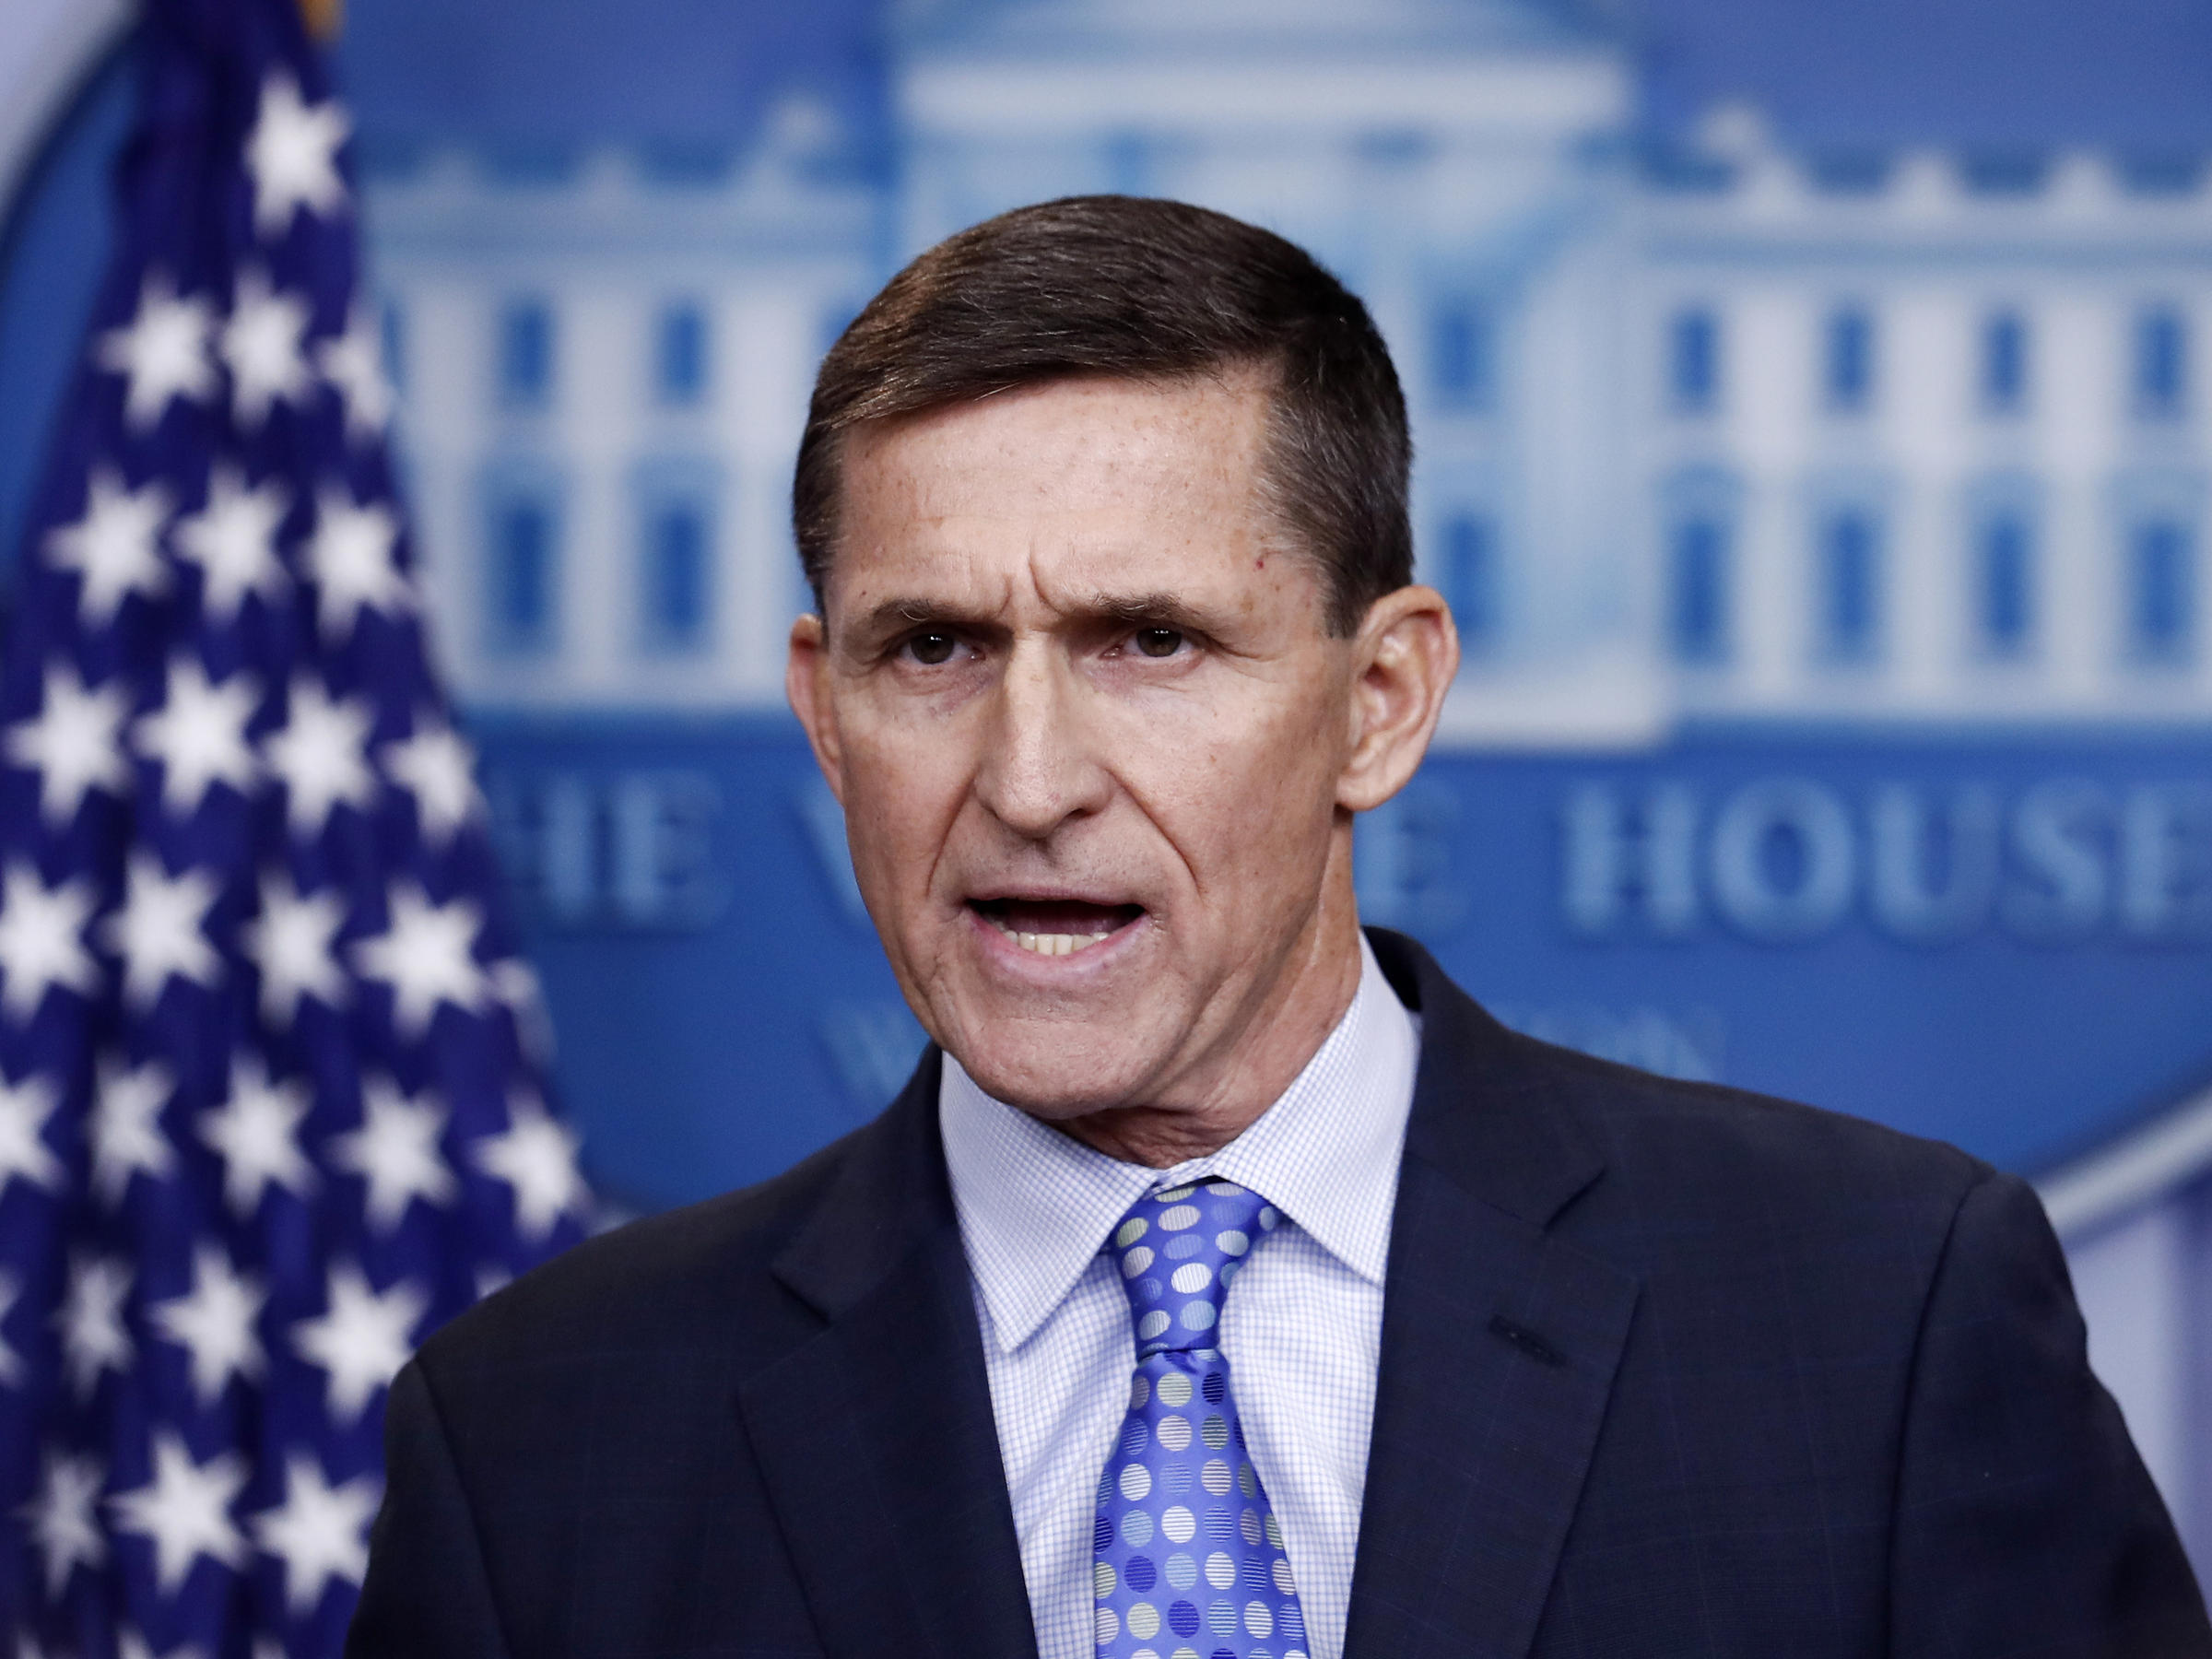 Flynn to invoke 5th, won't hand over documents, source says